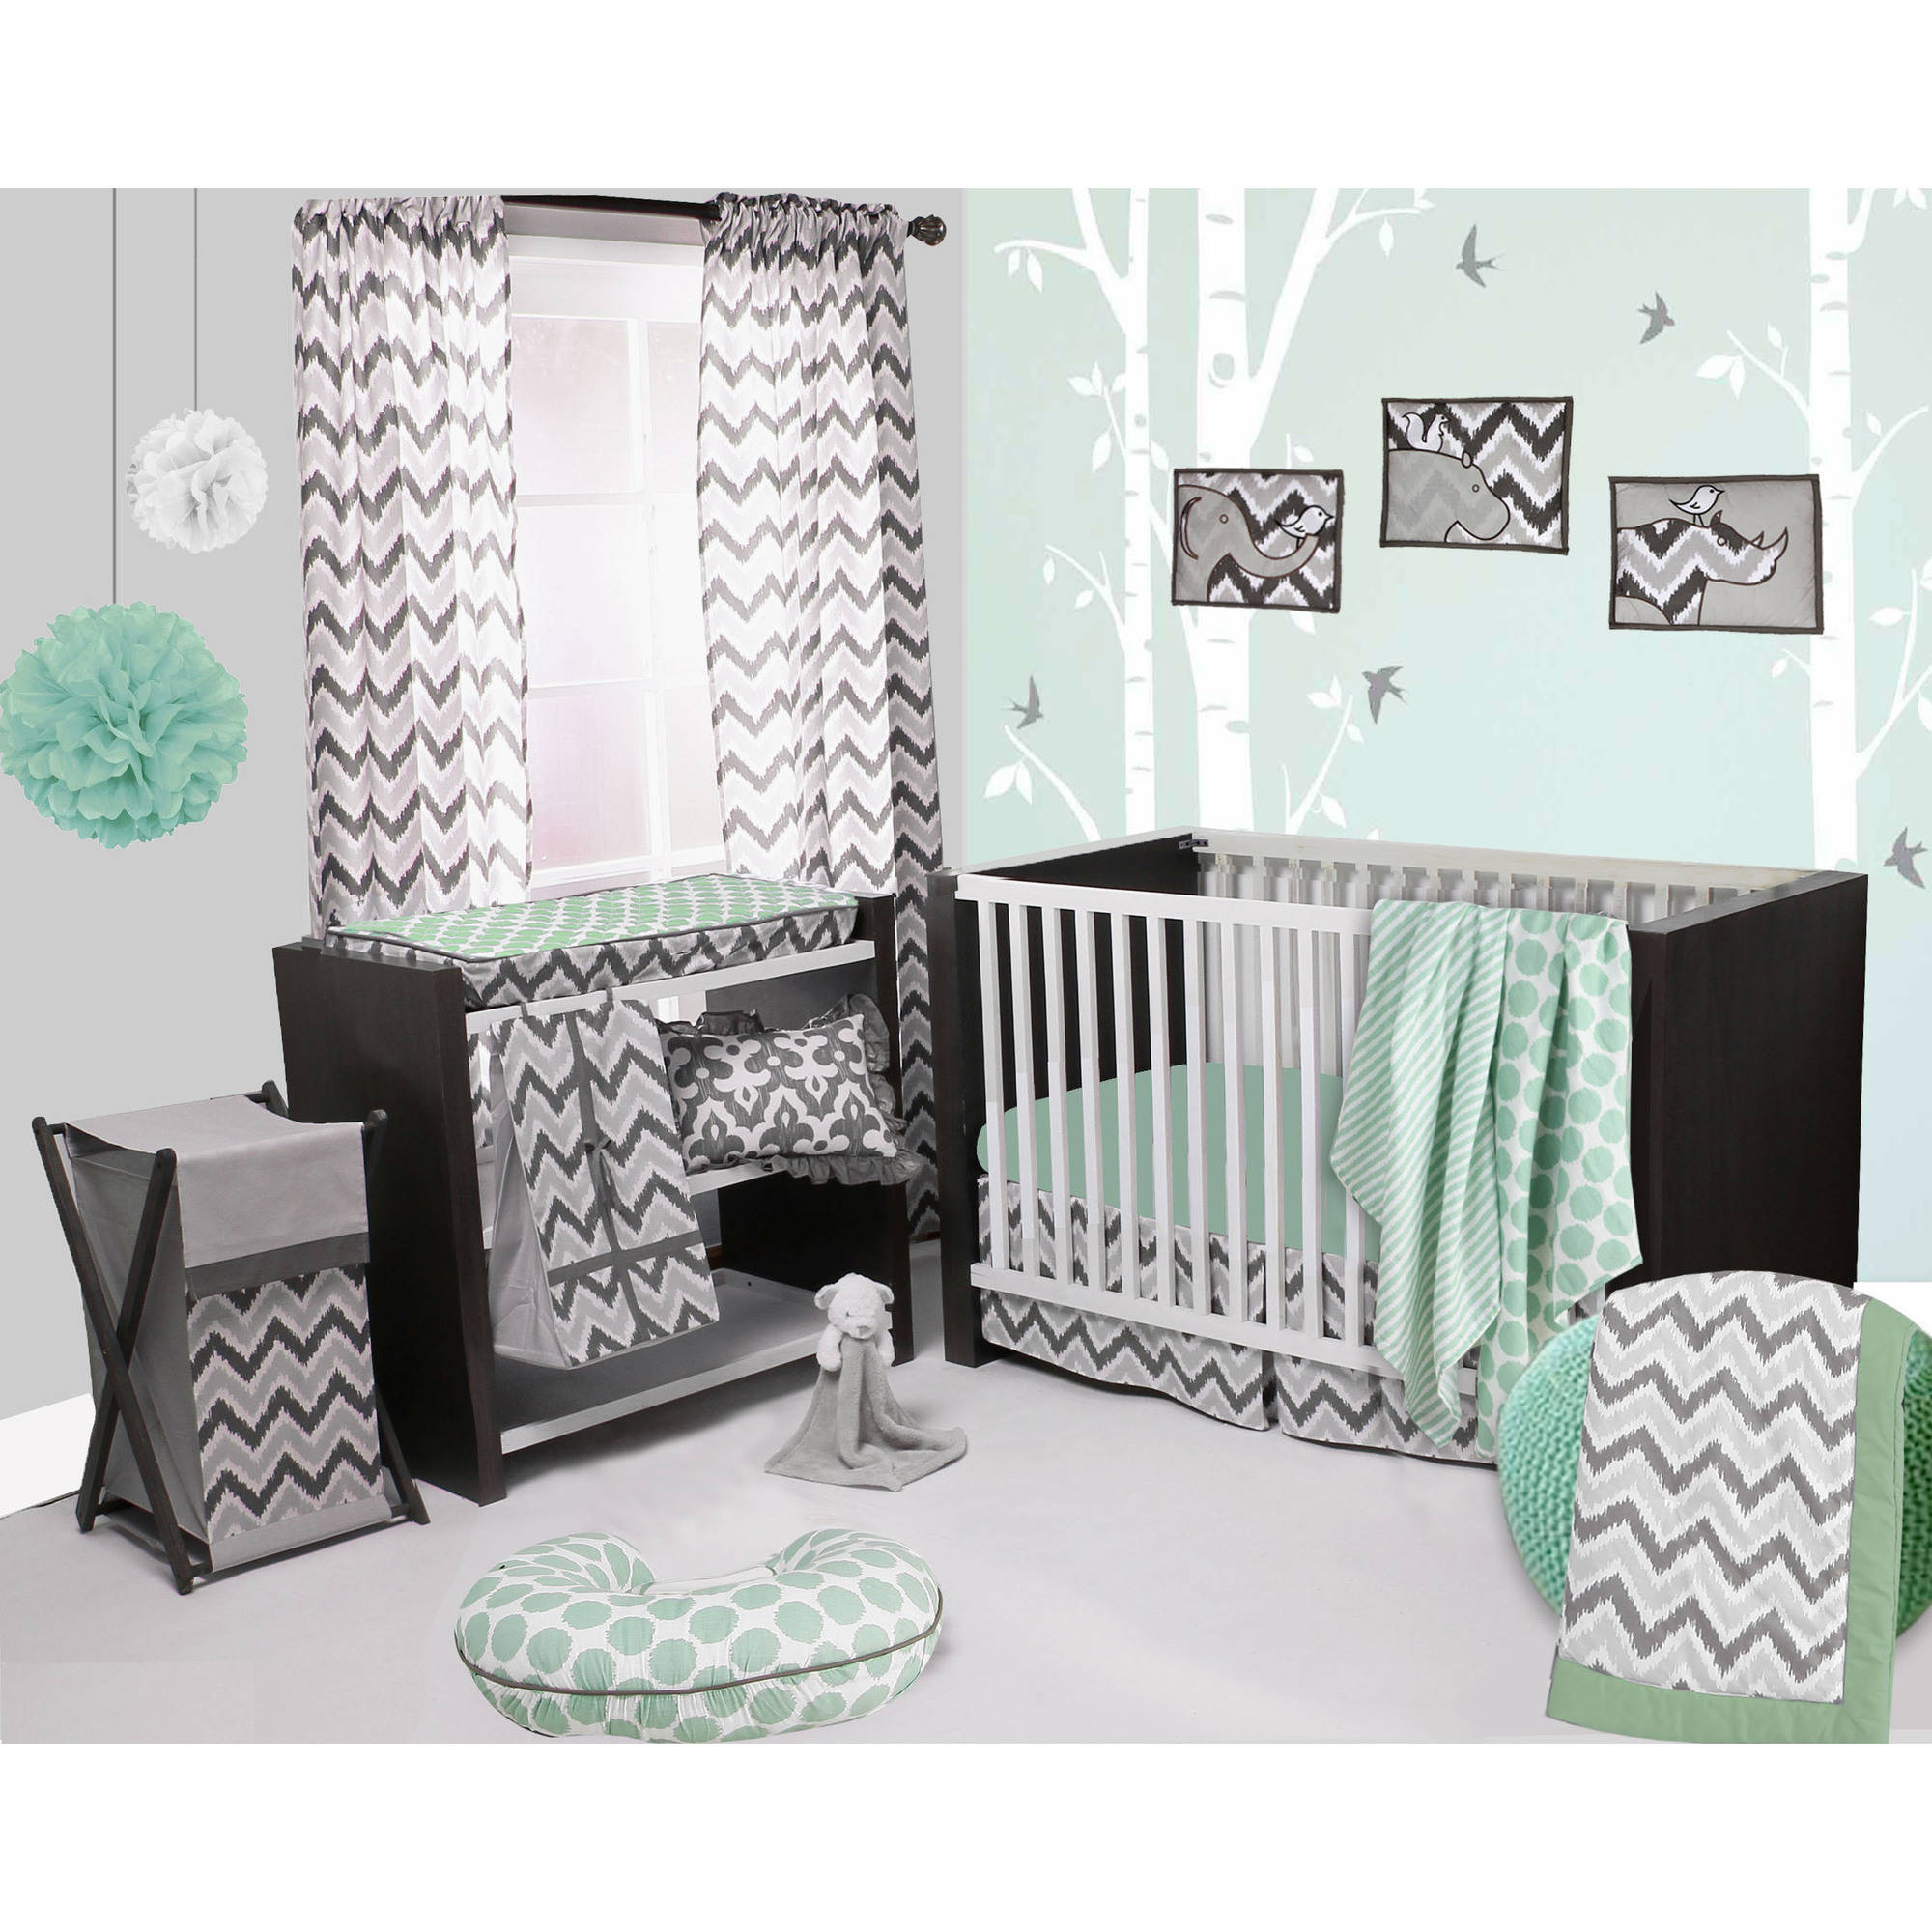 Bacati - Ikat Dots/Stripes 4-Piece Crib Set with 2 Muslin Swaddling Blankets, Mint/Gray